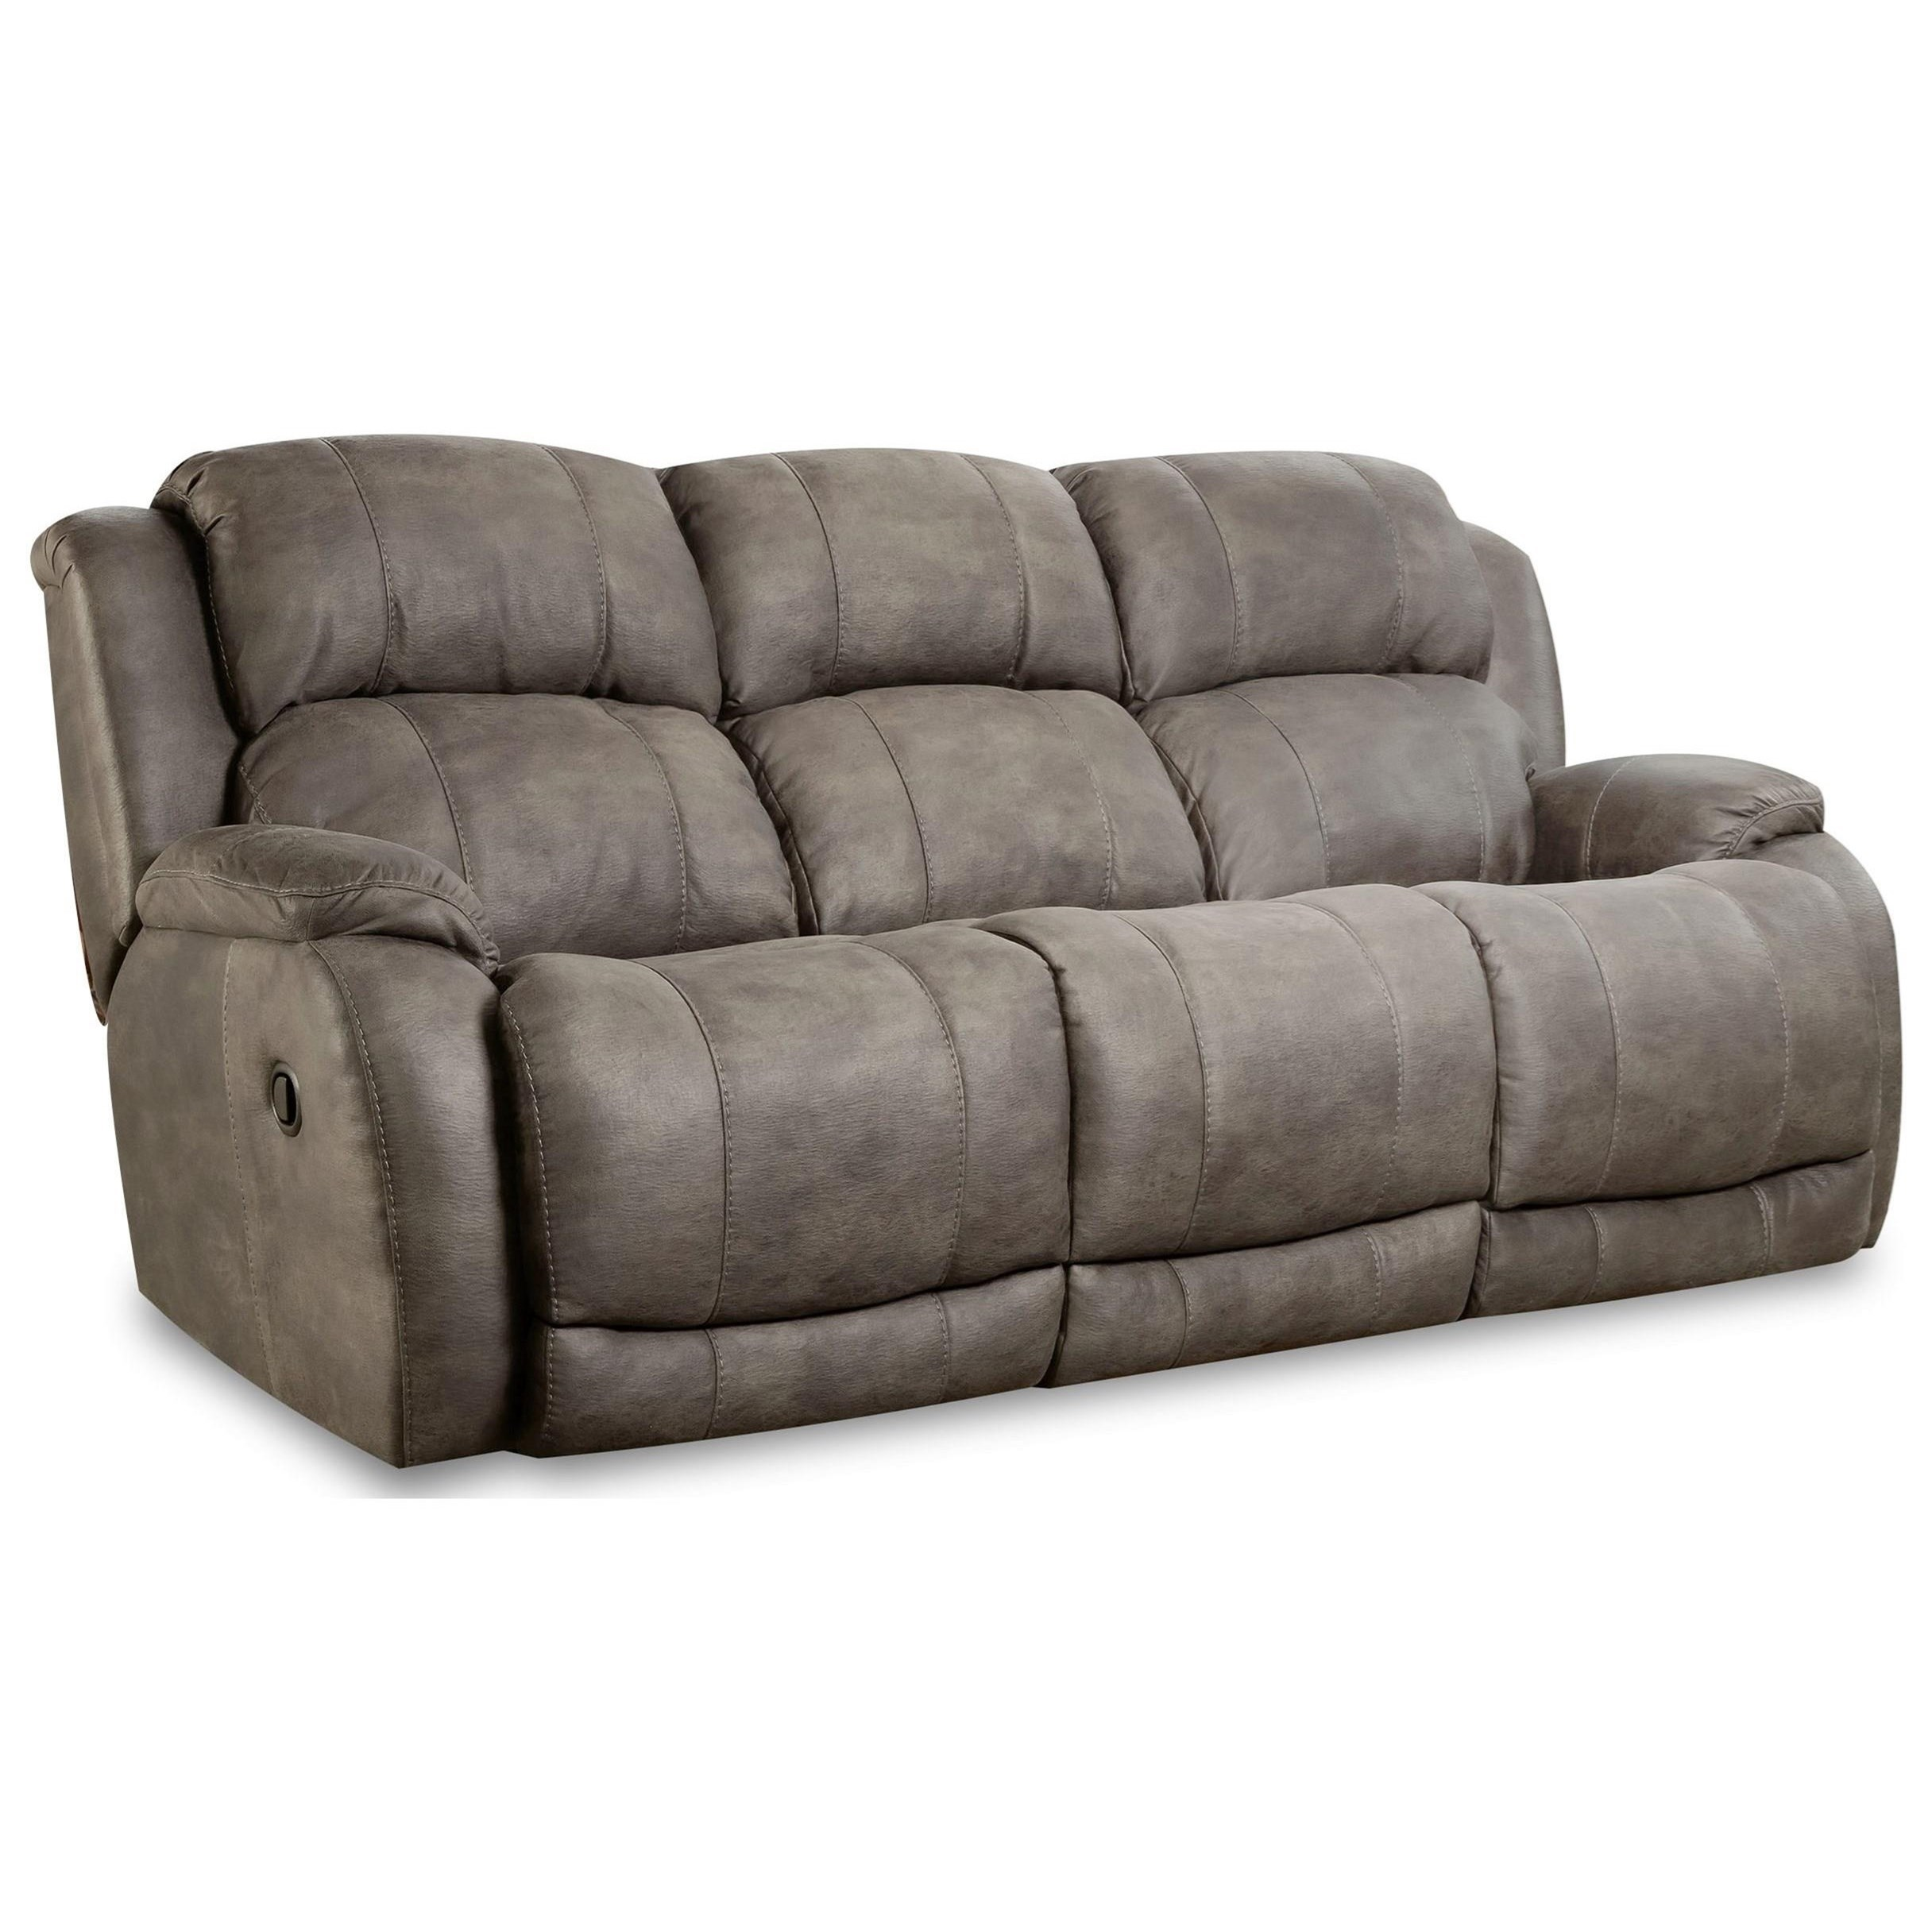 Denali Dual Reclining Sofa by HomeStretch at Hudson's Furniture